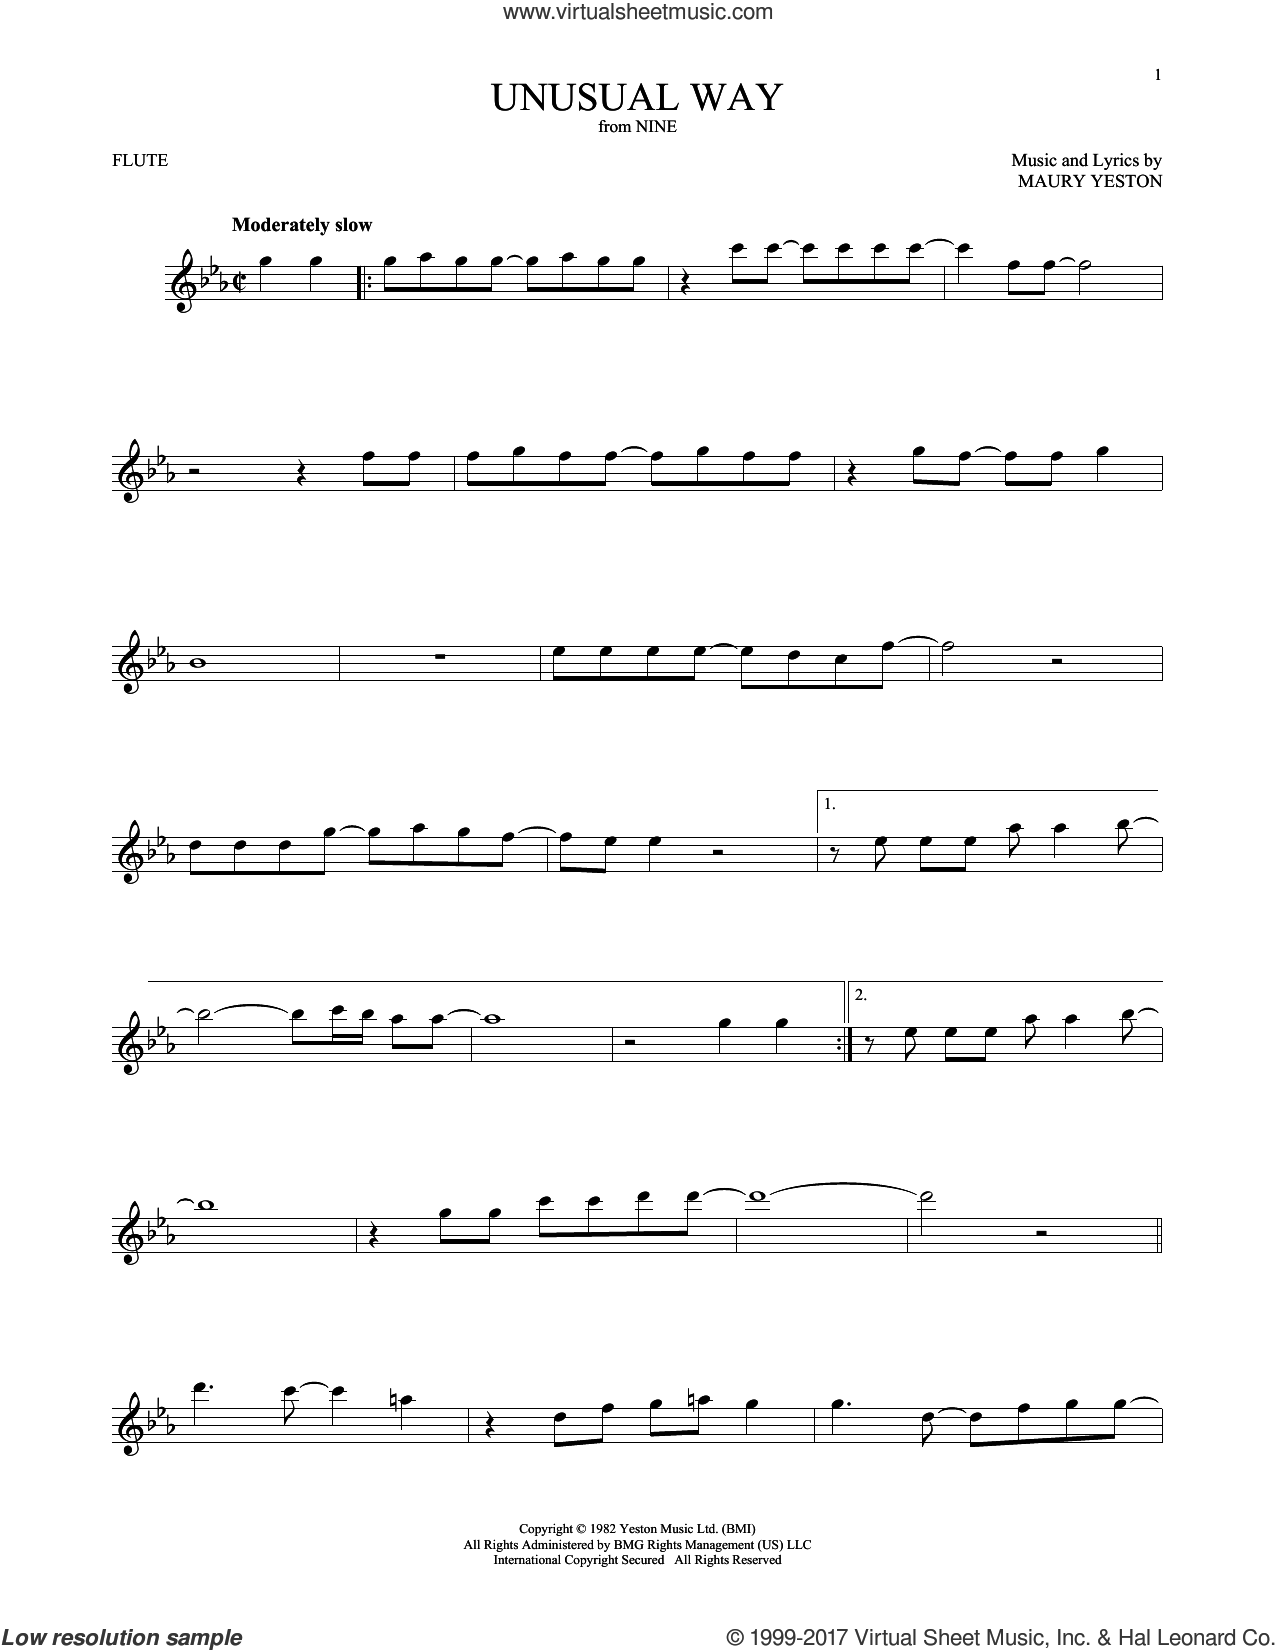 Unusual Way sheet music for flute solo by Maury Yeston and Linda Eder. Score Image Preview.